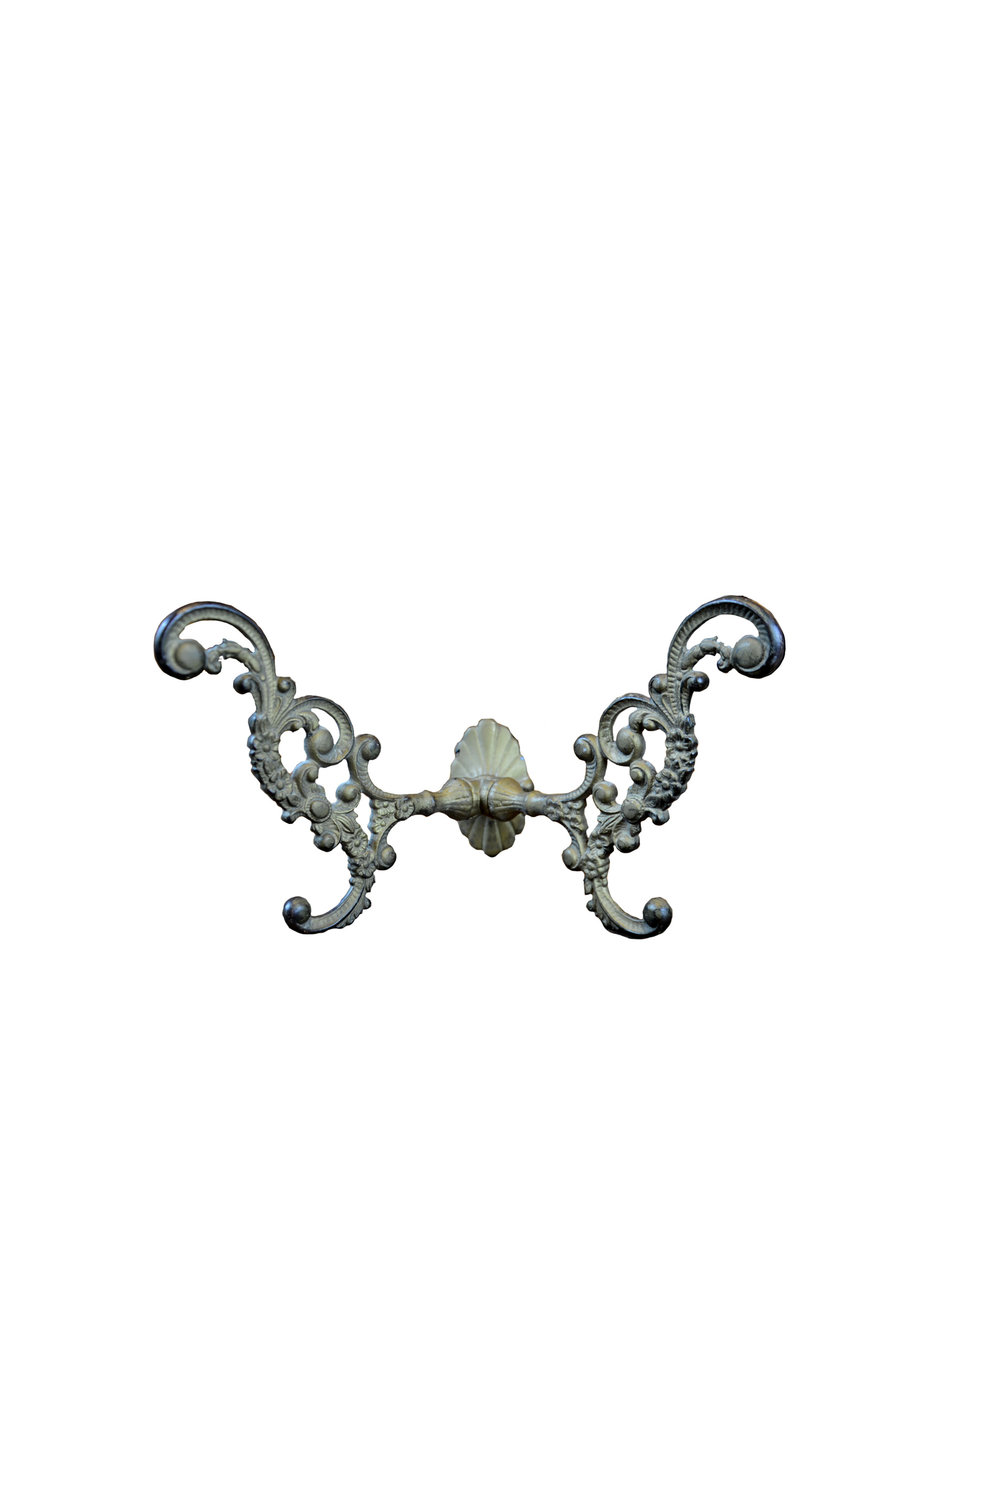 BRASS PLATED AND IRON OXIDIZED COAT TREE HOOK AA# 46876-B   1 available $165.00 each